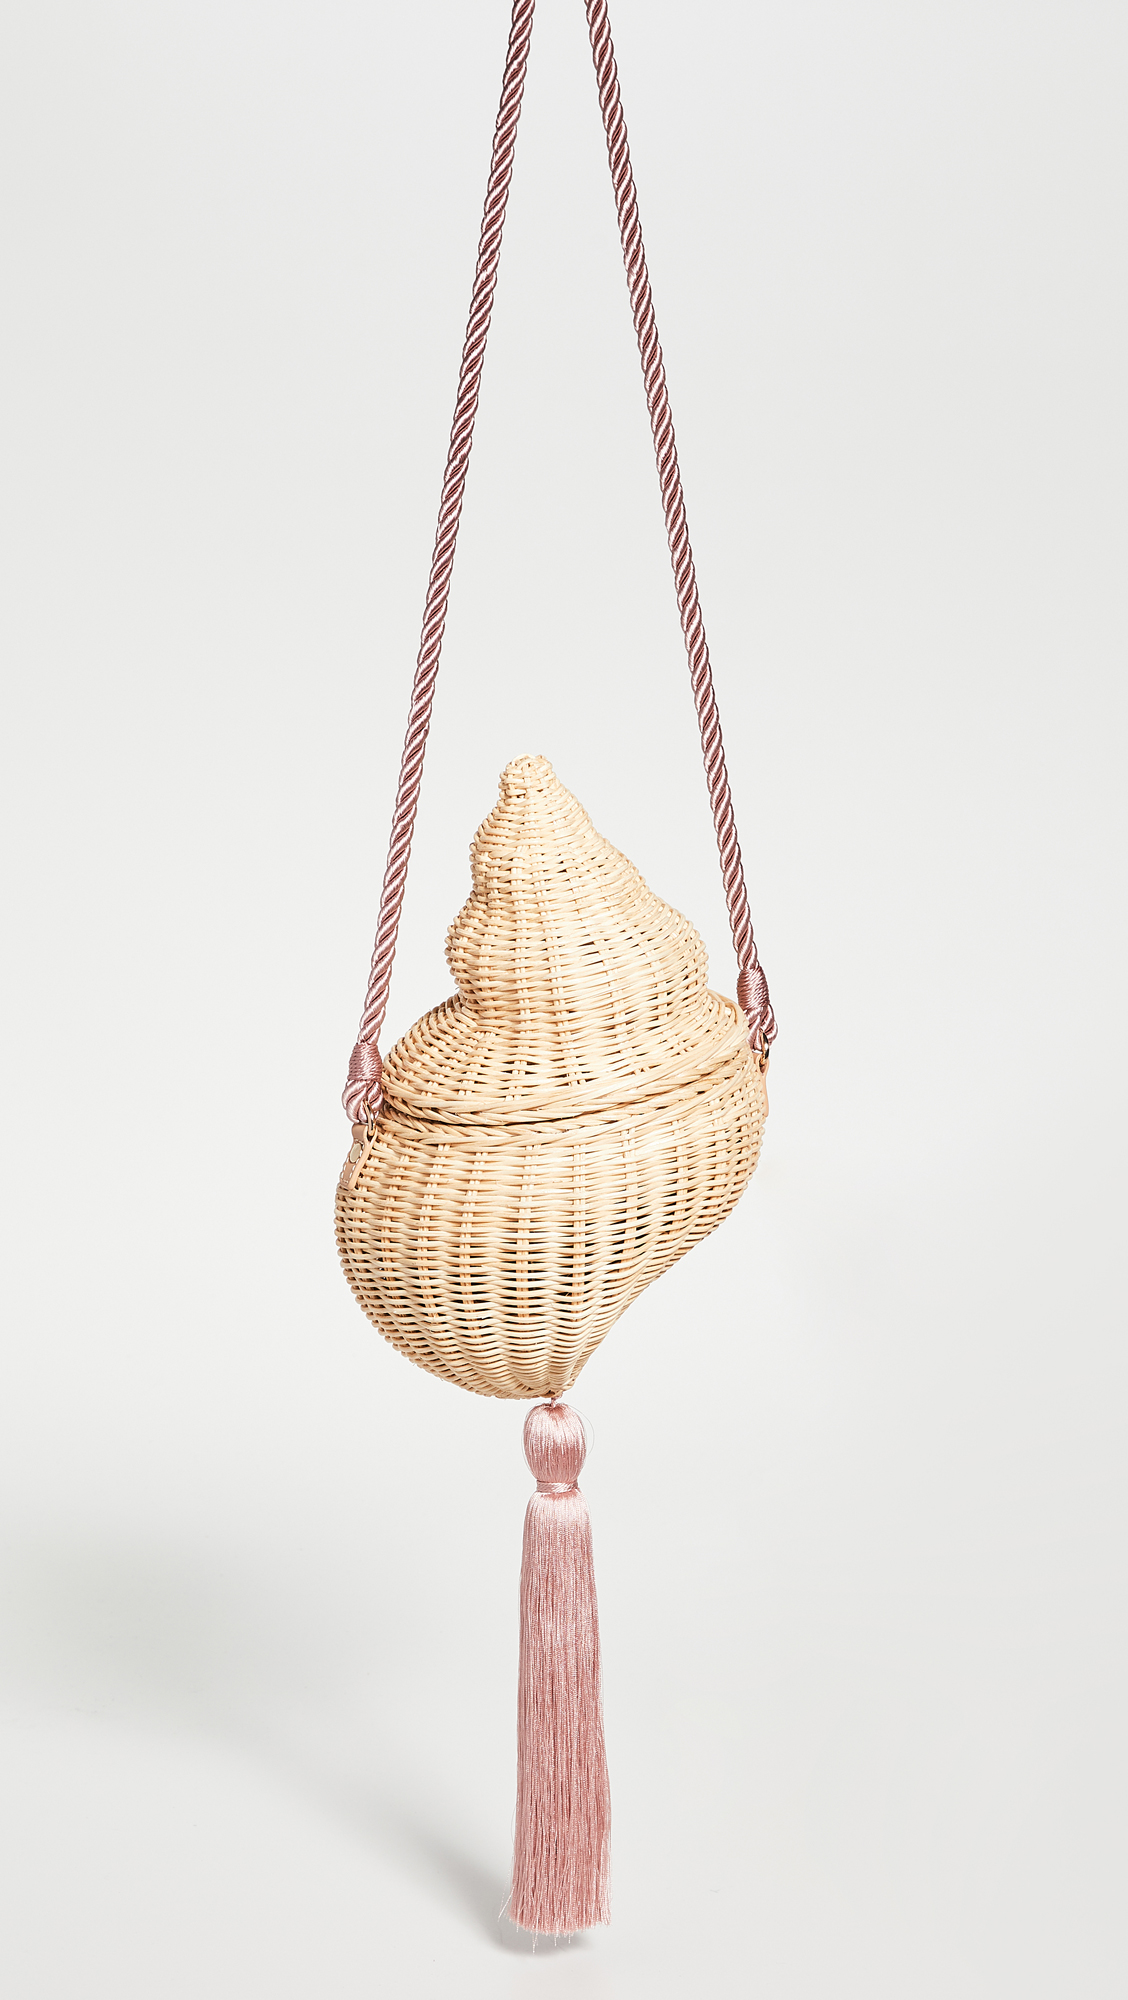 Woven Straw Conch Shell Bag